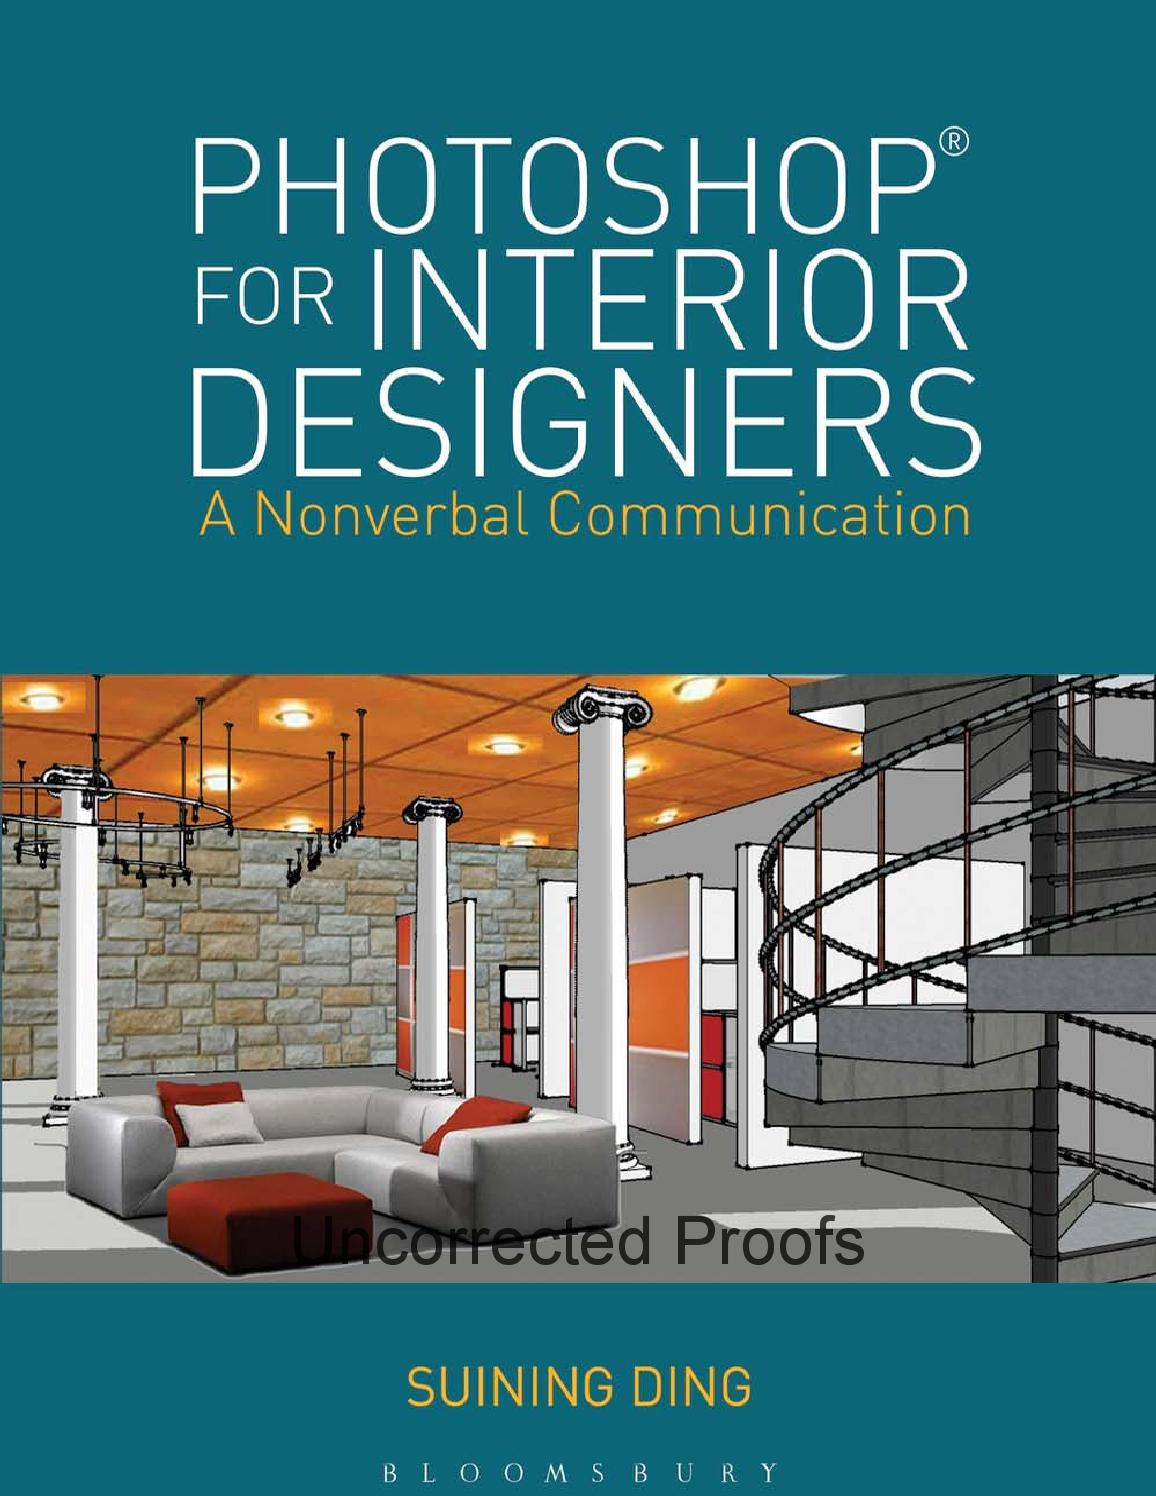 Photoshop For Interior Designers By Suining Ding By Bloomsbury Publishing    Issuu